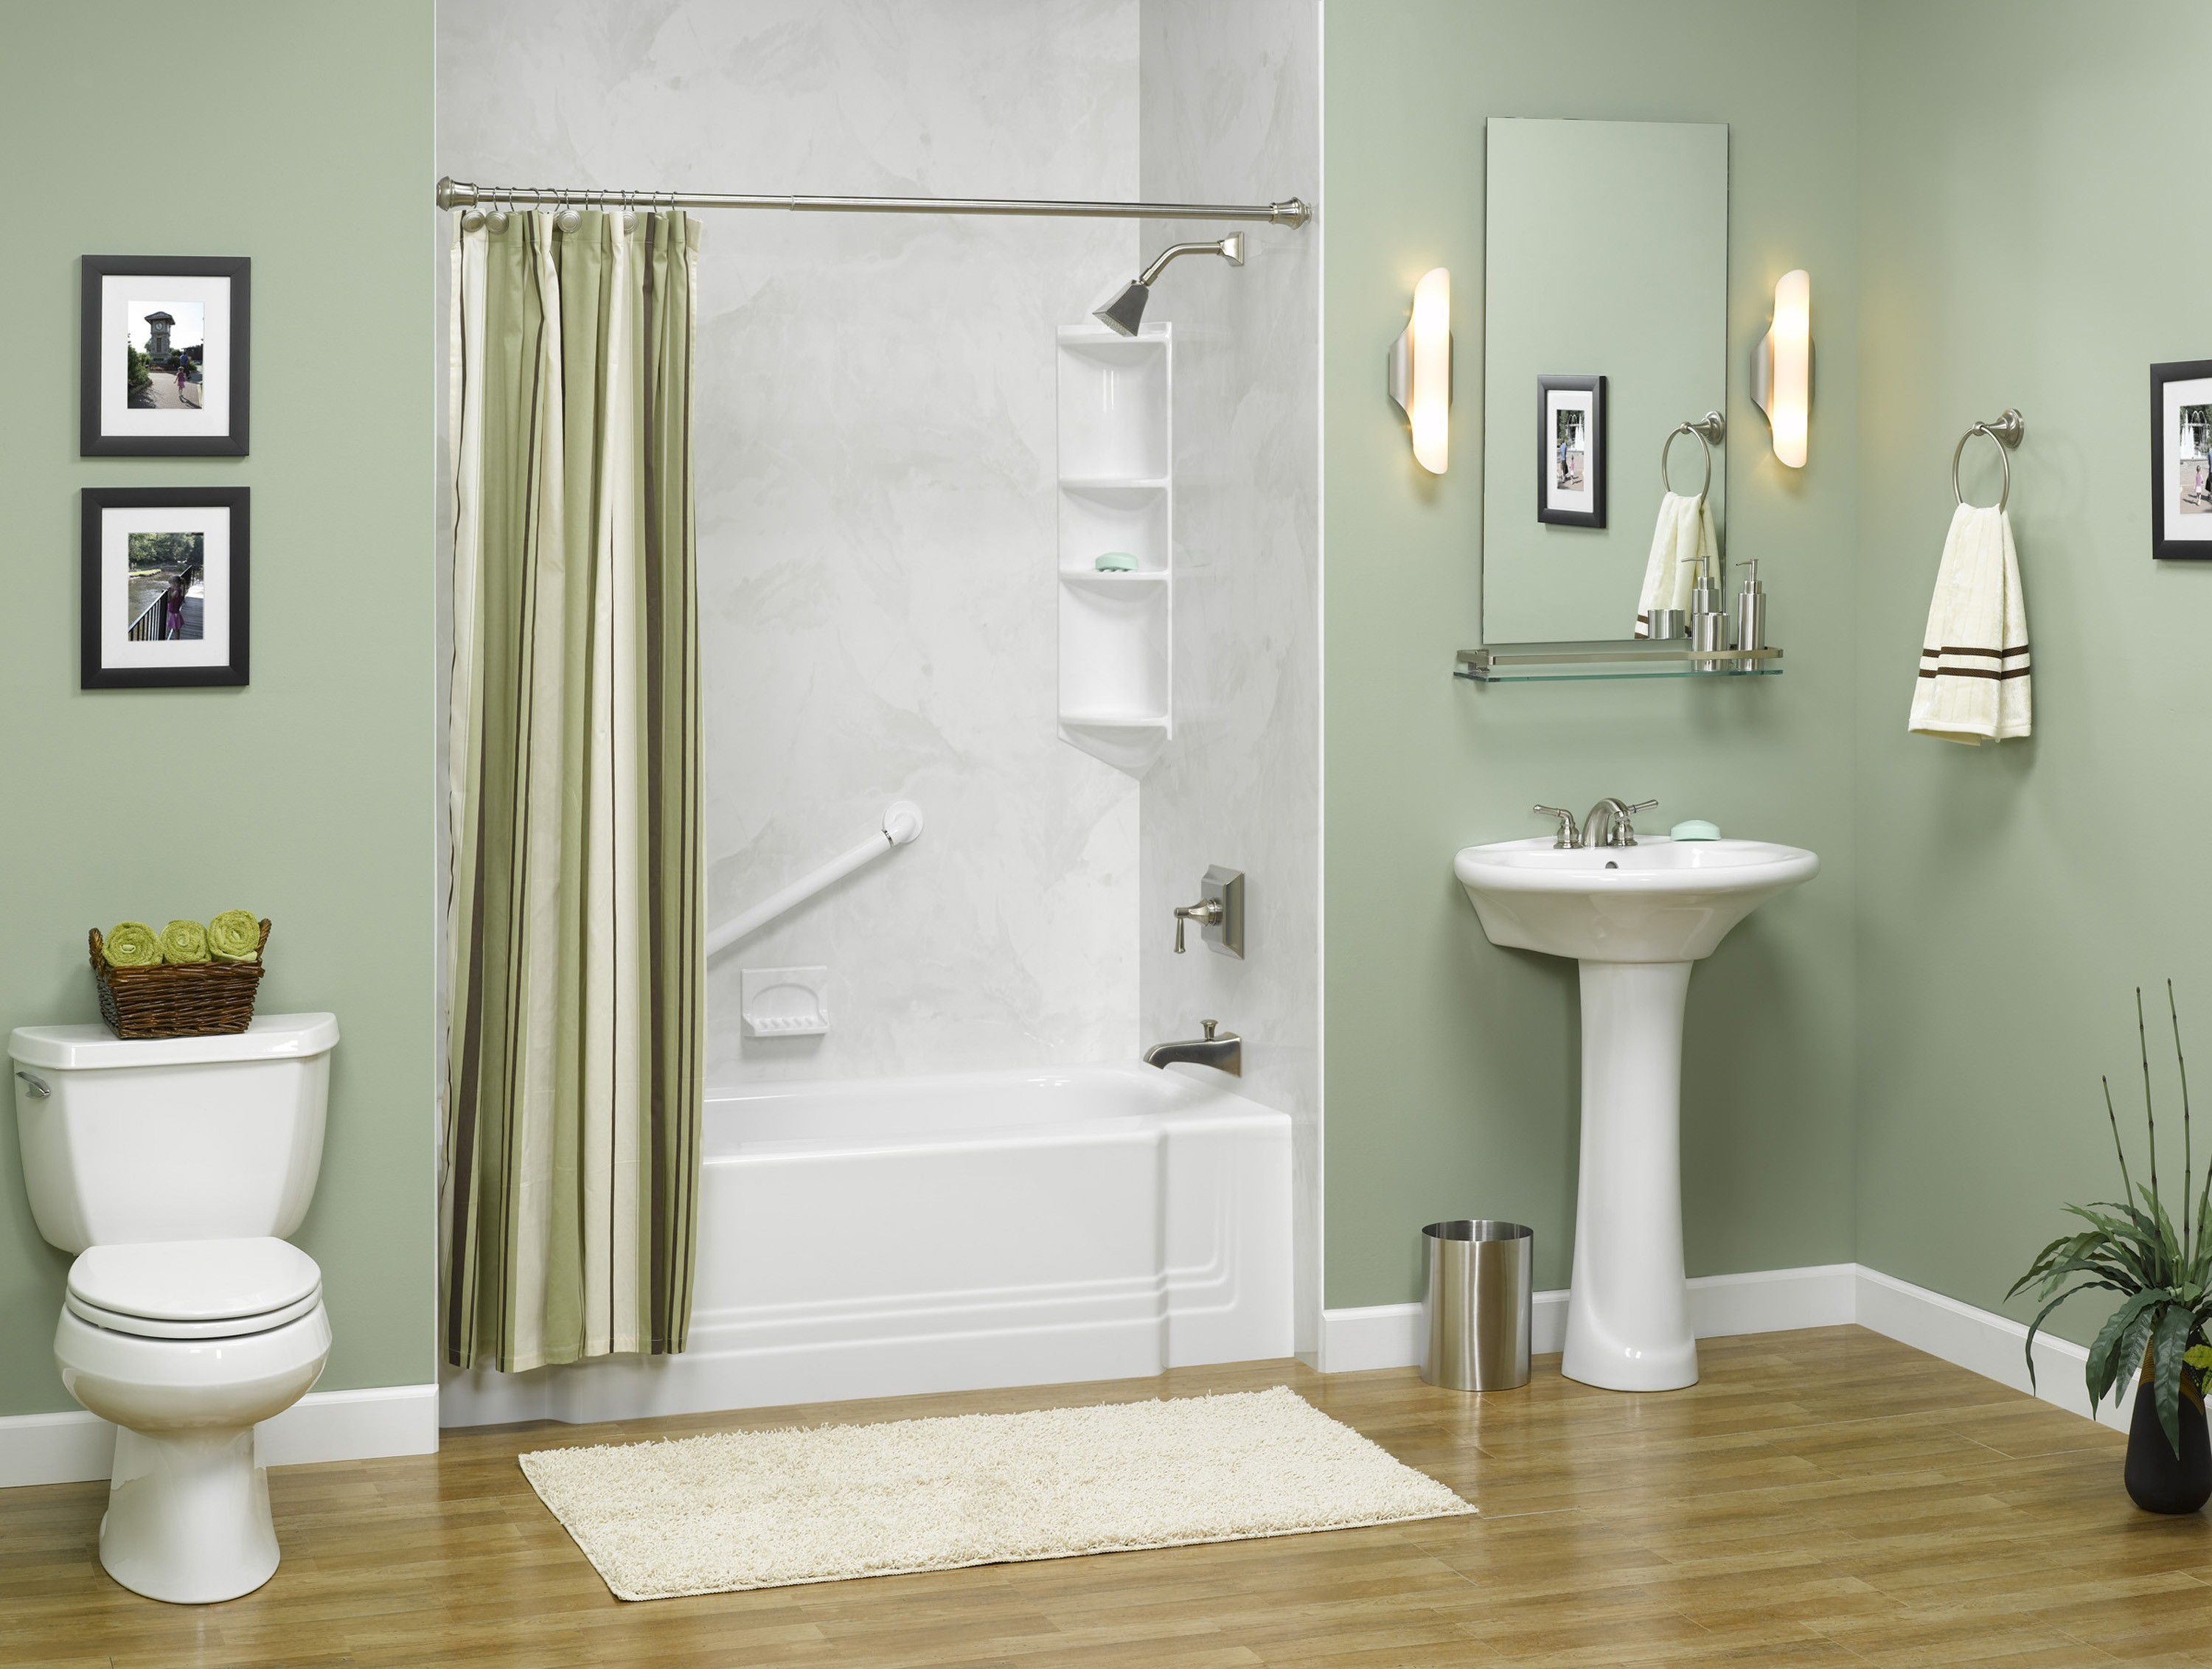 What Are The Most Popular Colors For Bathroom